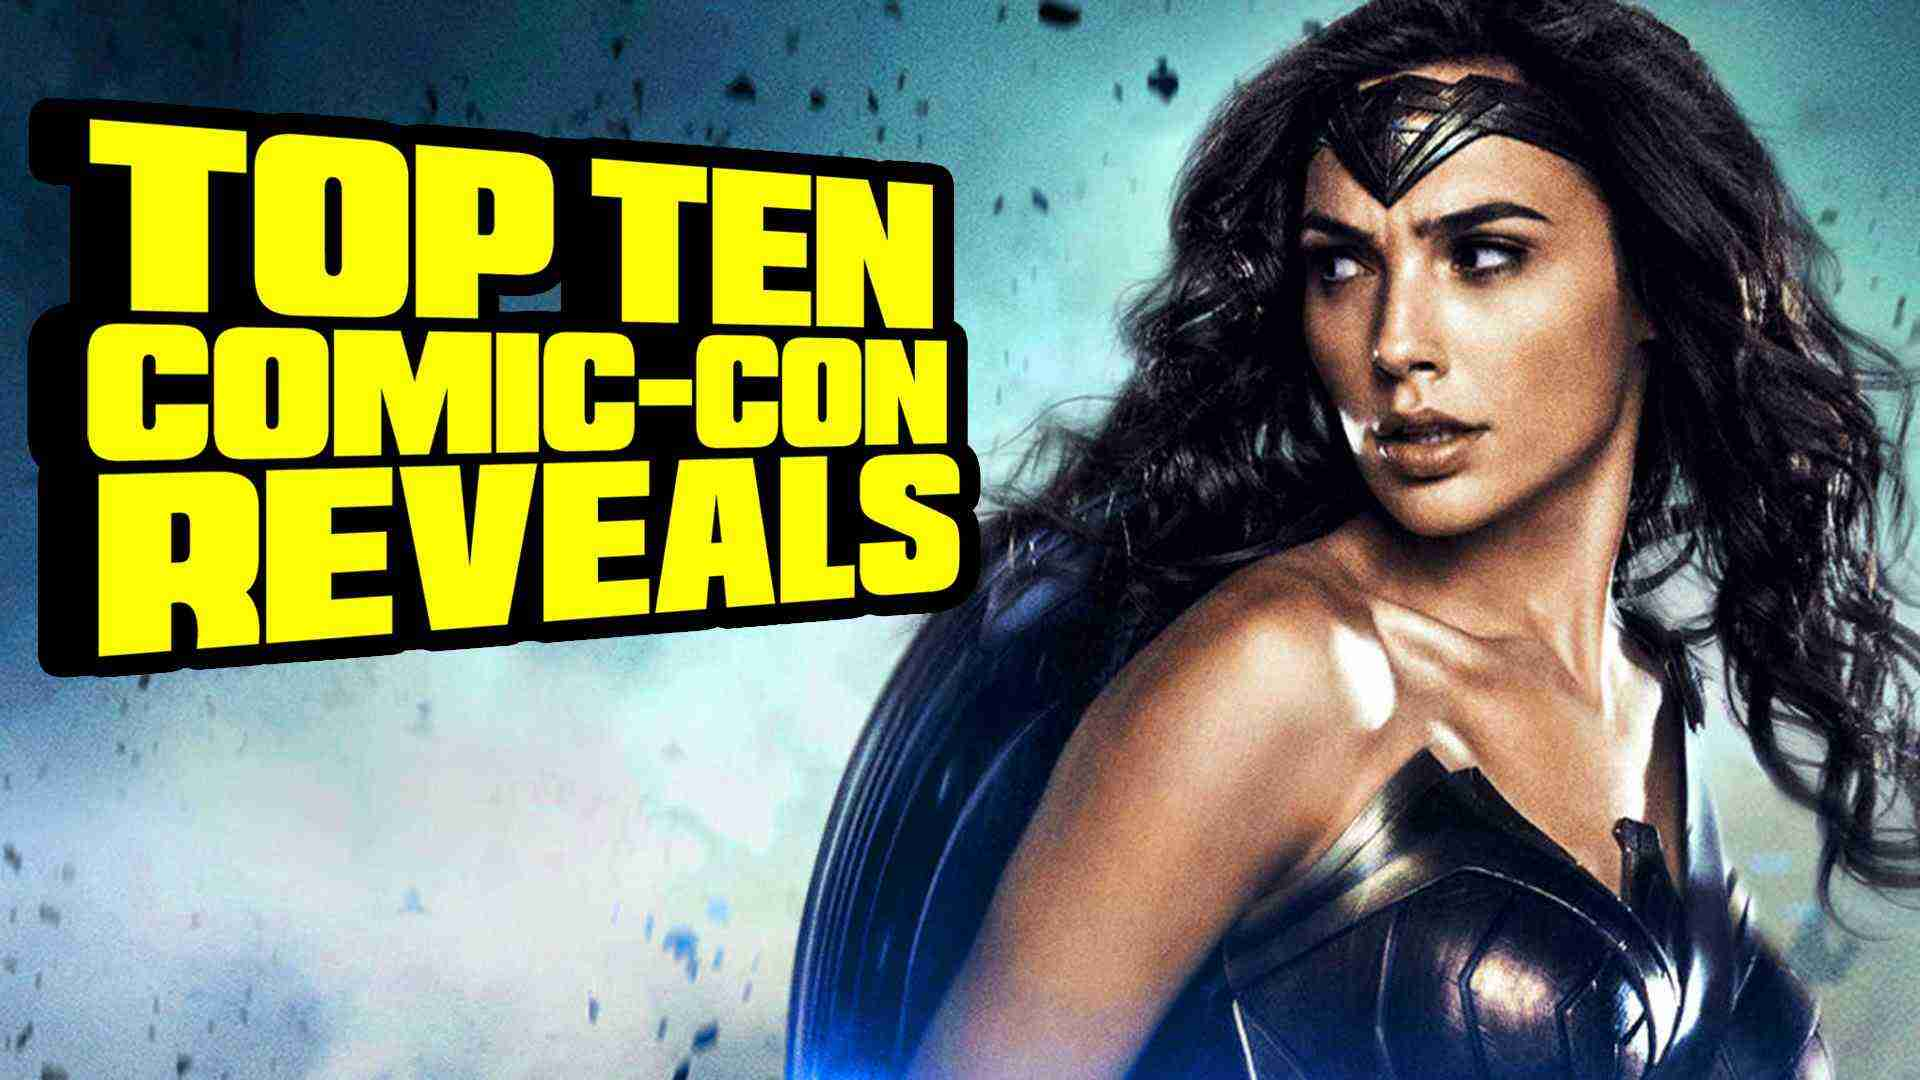 Top Ten Comic Con 2016 Reveals – TenFTW